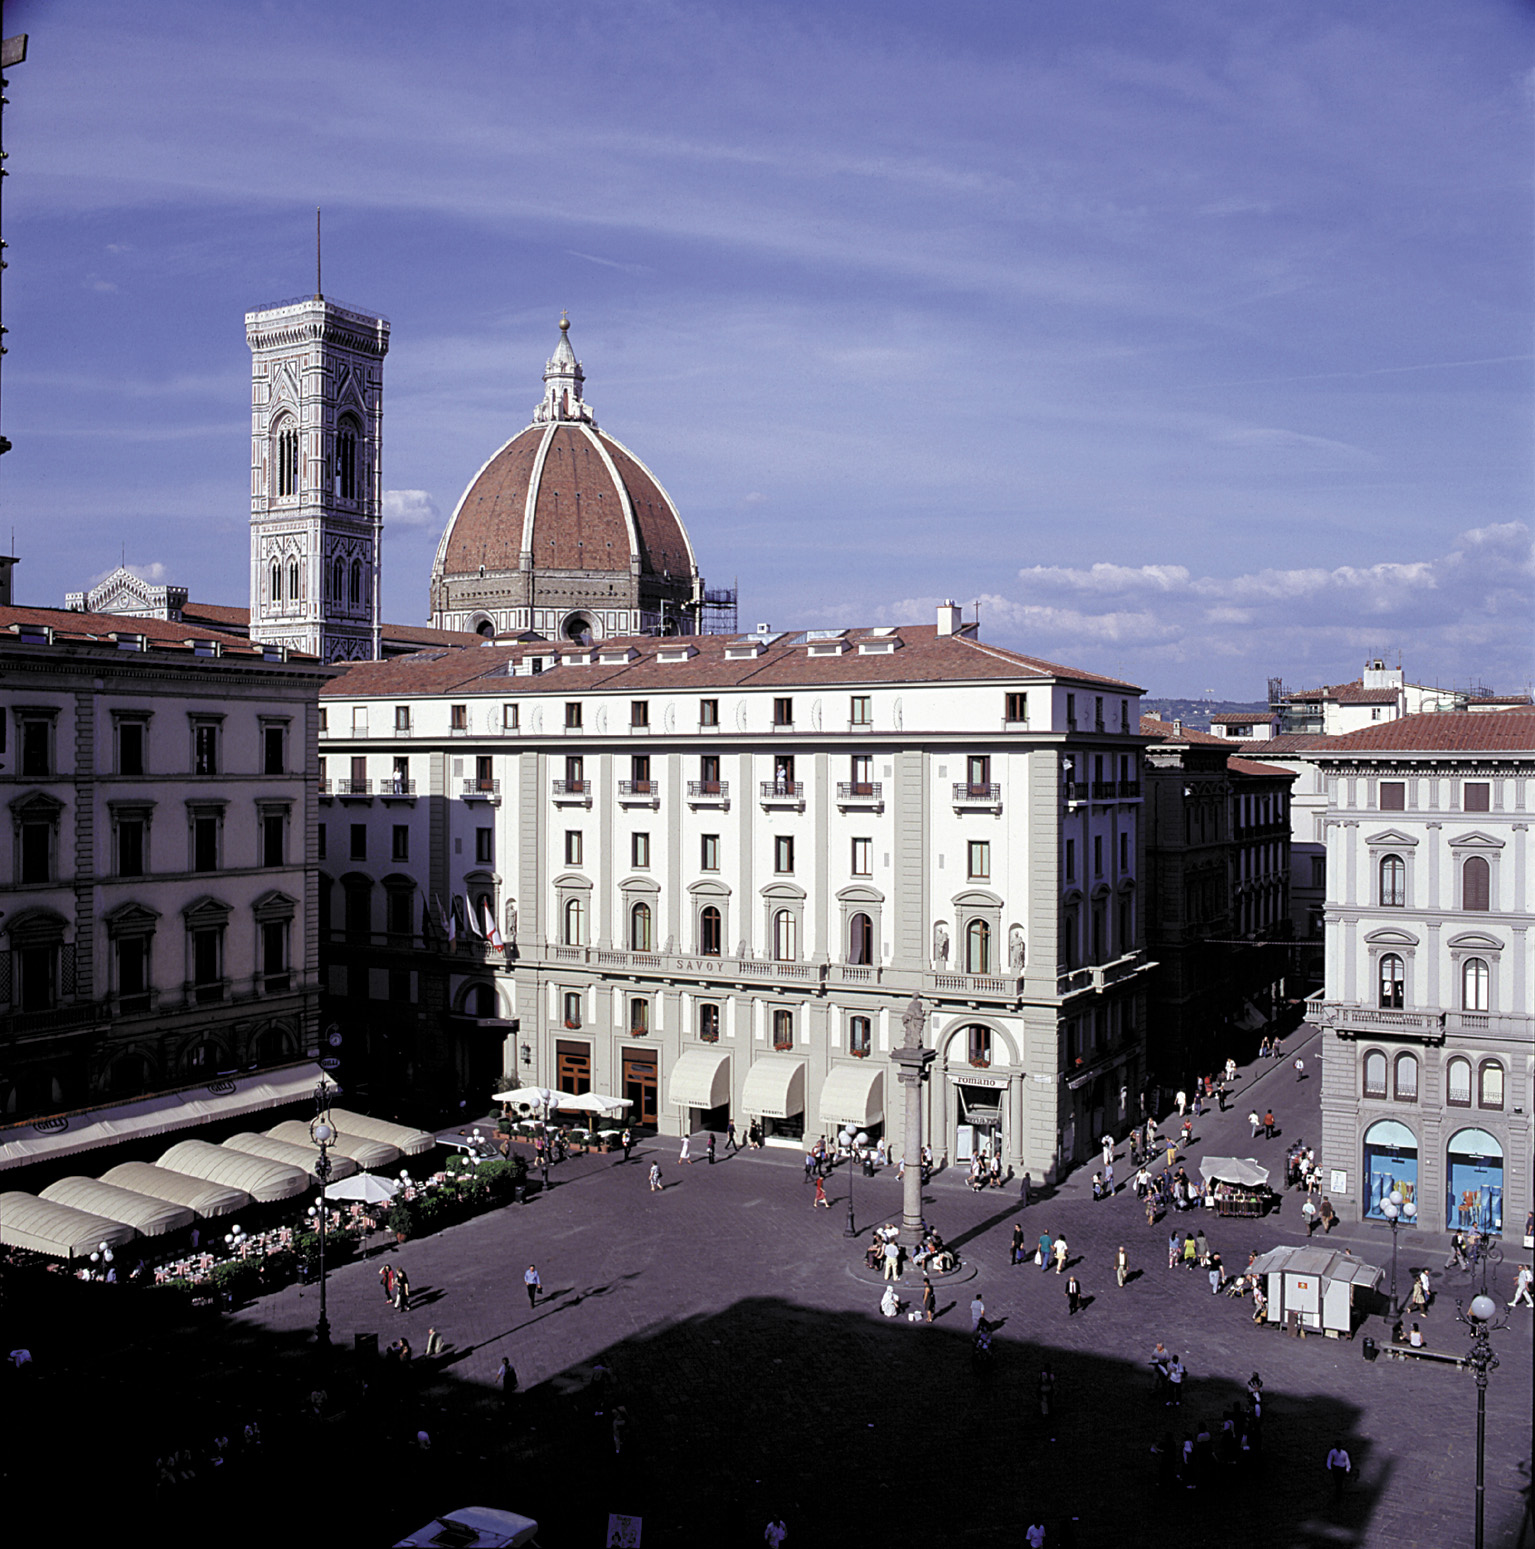 Hotel Savoy, Firenze - Piazza della Repubblica